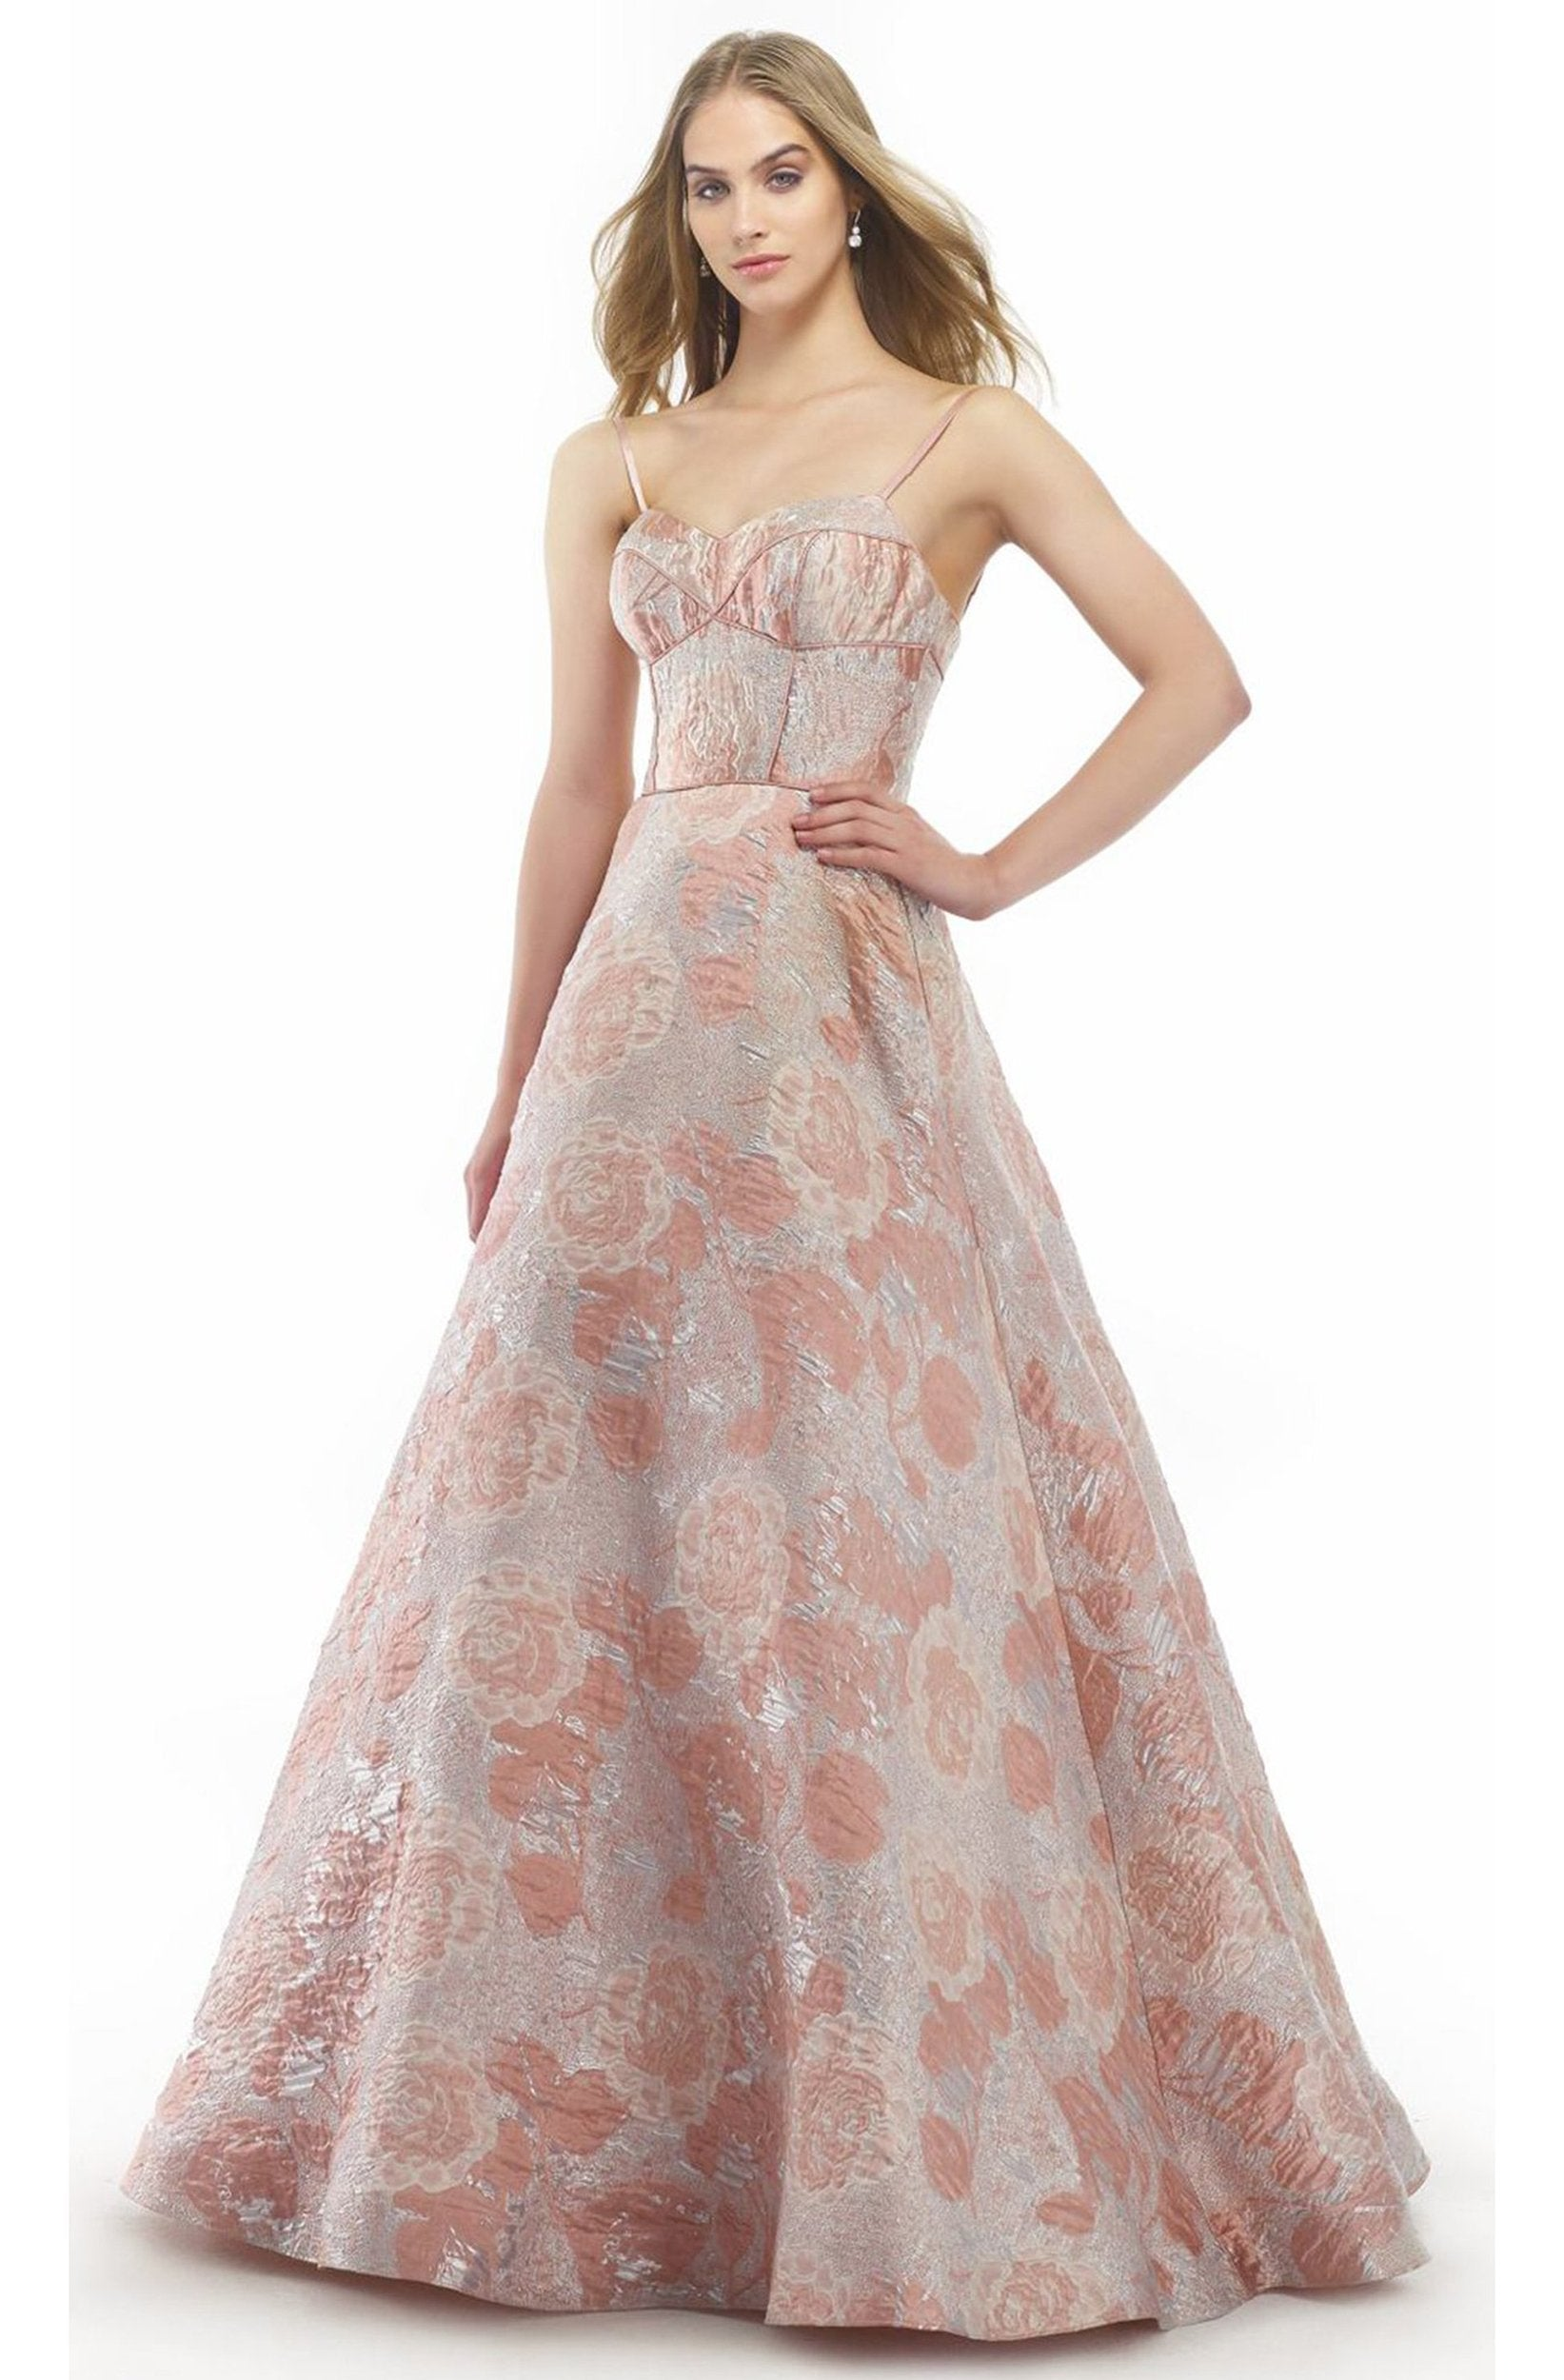 Morrell Maxie - 15813 Floral Embellished Sweetheart Ballgown in Pink and Silver